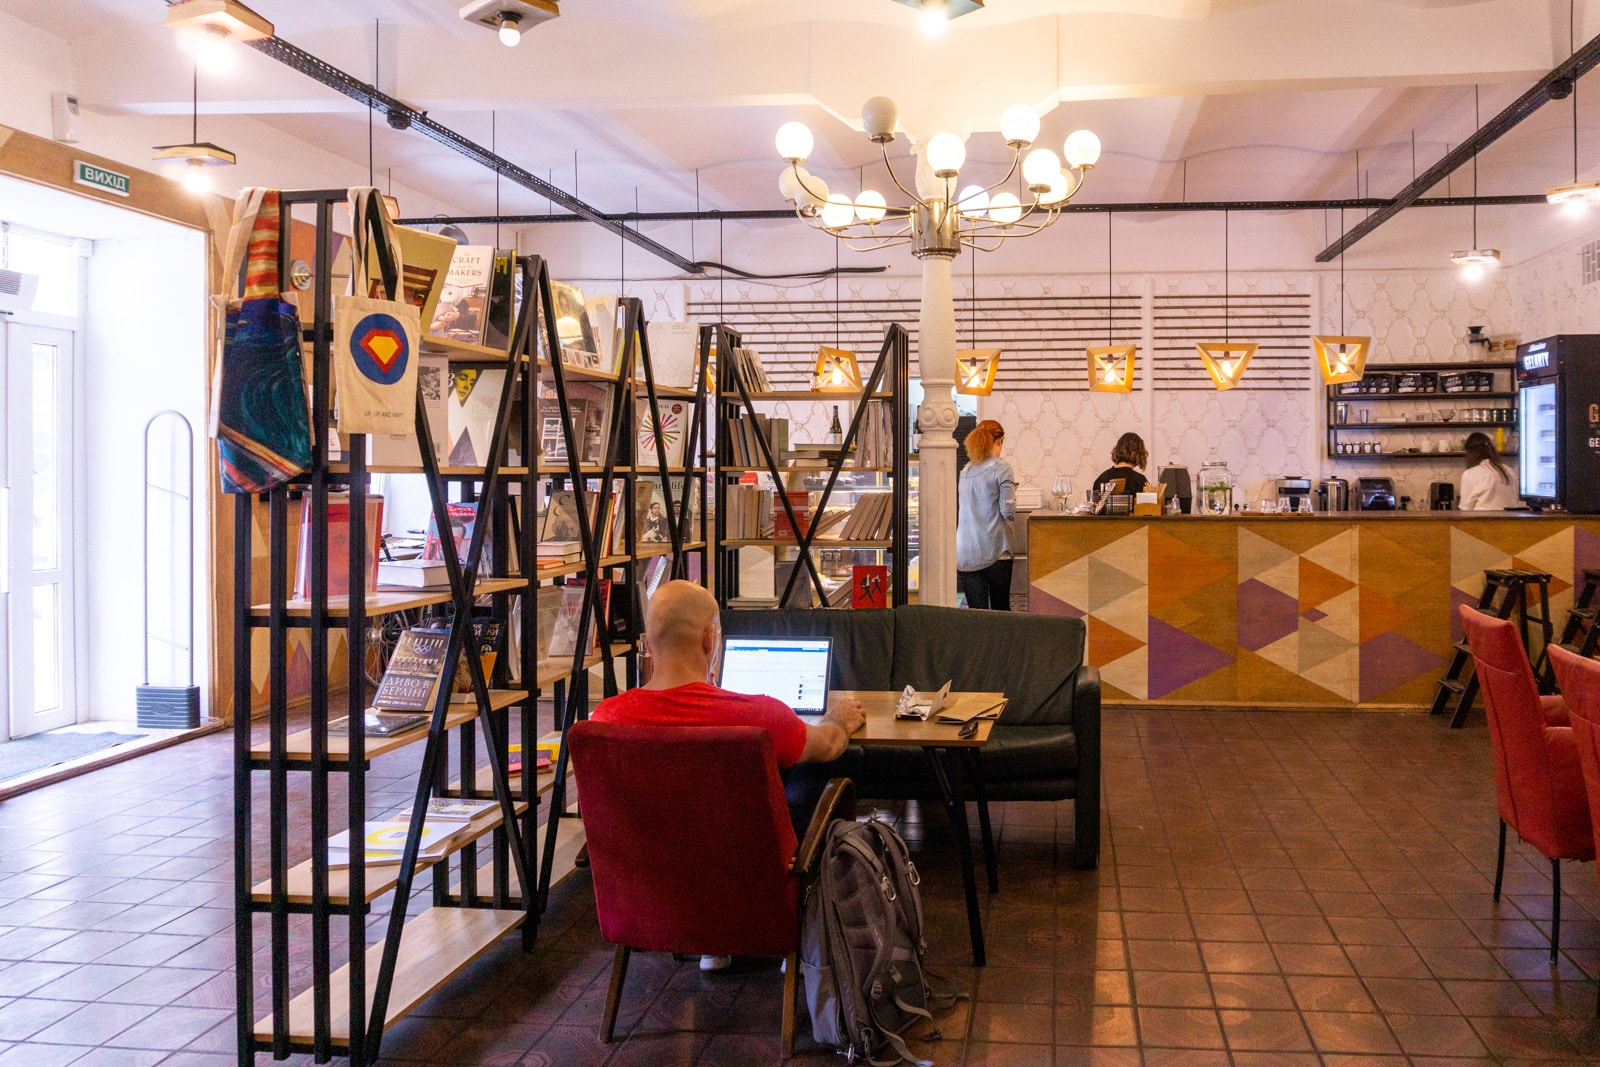 A man working remotely in Kharms cafe in Kiev, Ukraine